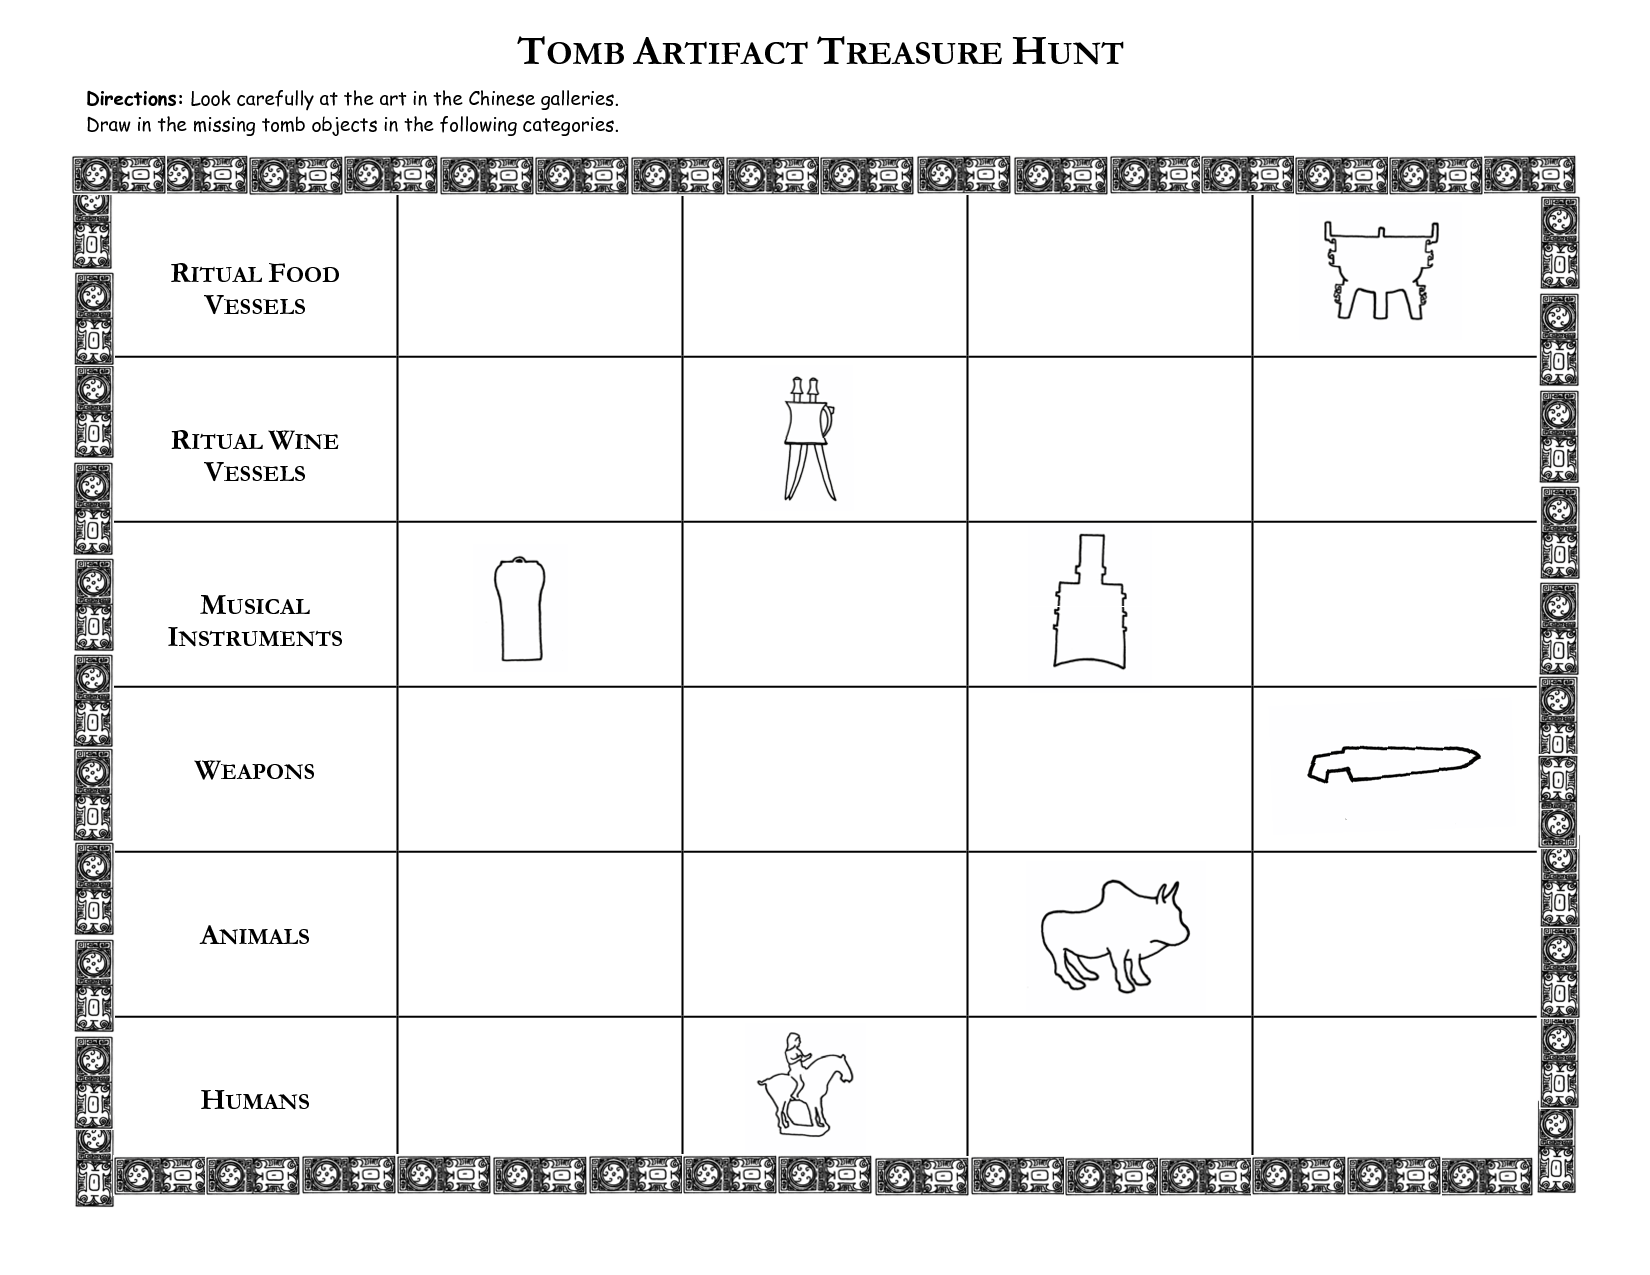 Worksheets Ancient China Worksheets ancient china worksheets tomb artifact treasure hunt directions look look